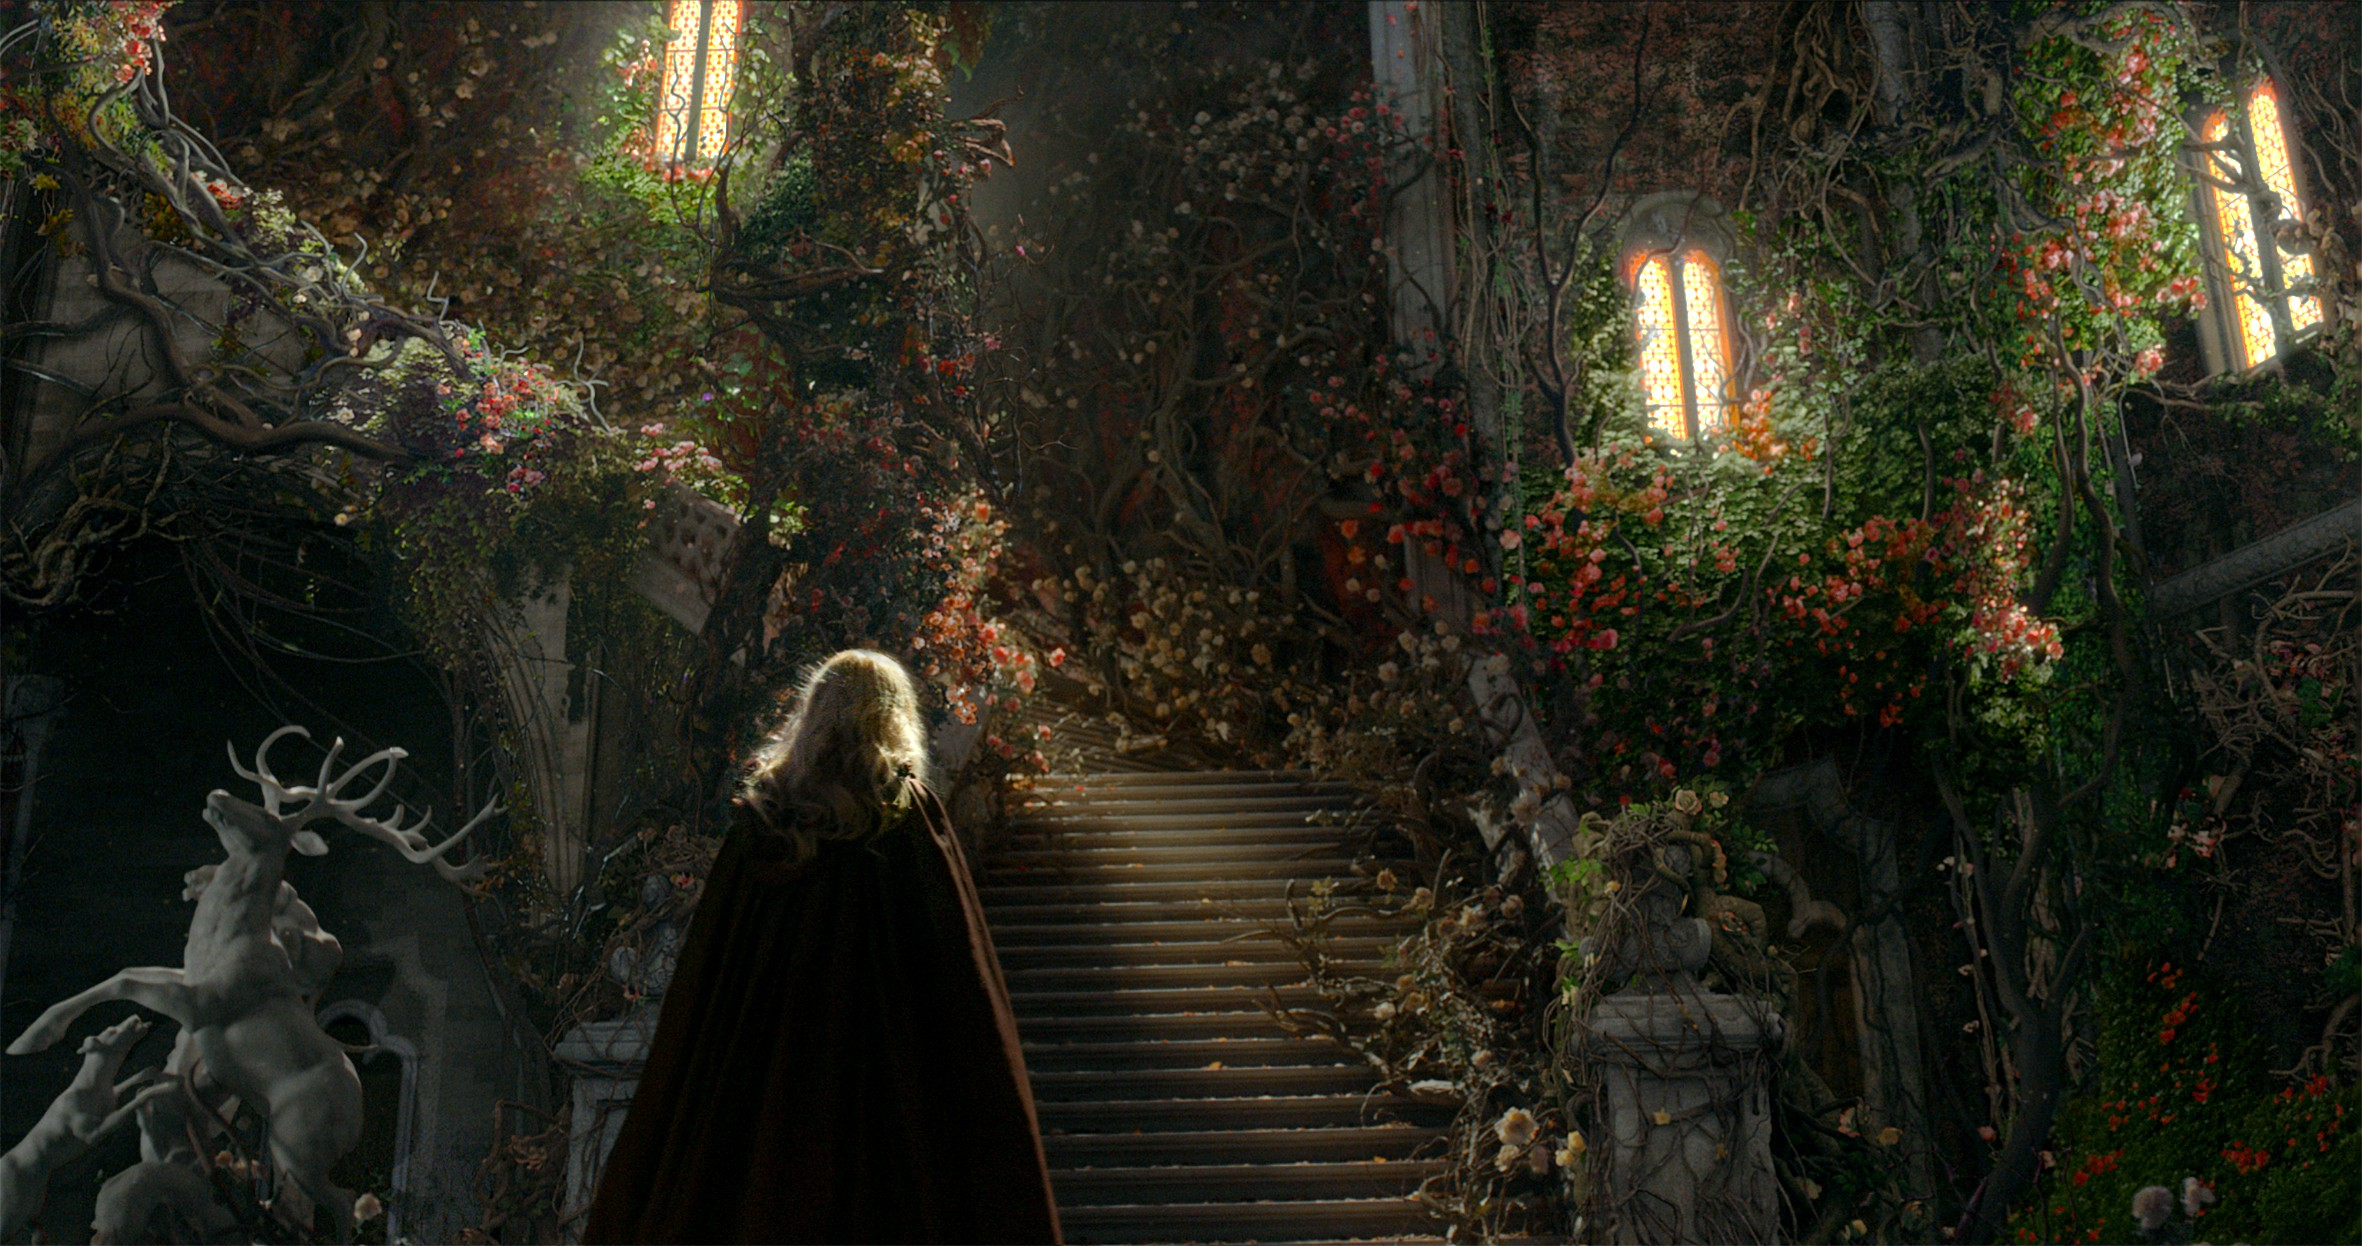 la belle et la bete 2014 english subtitles watch online